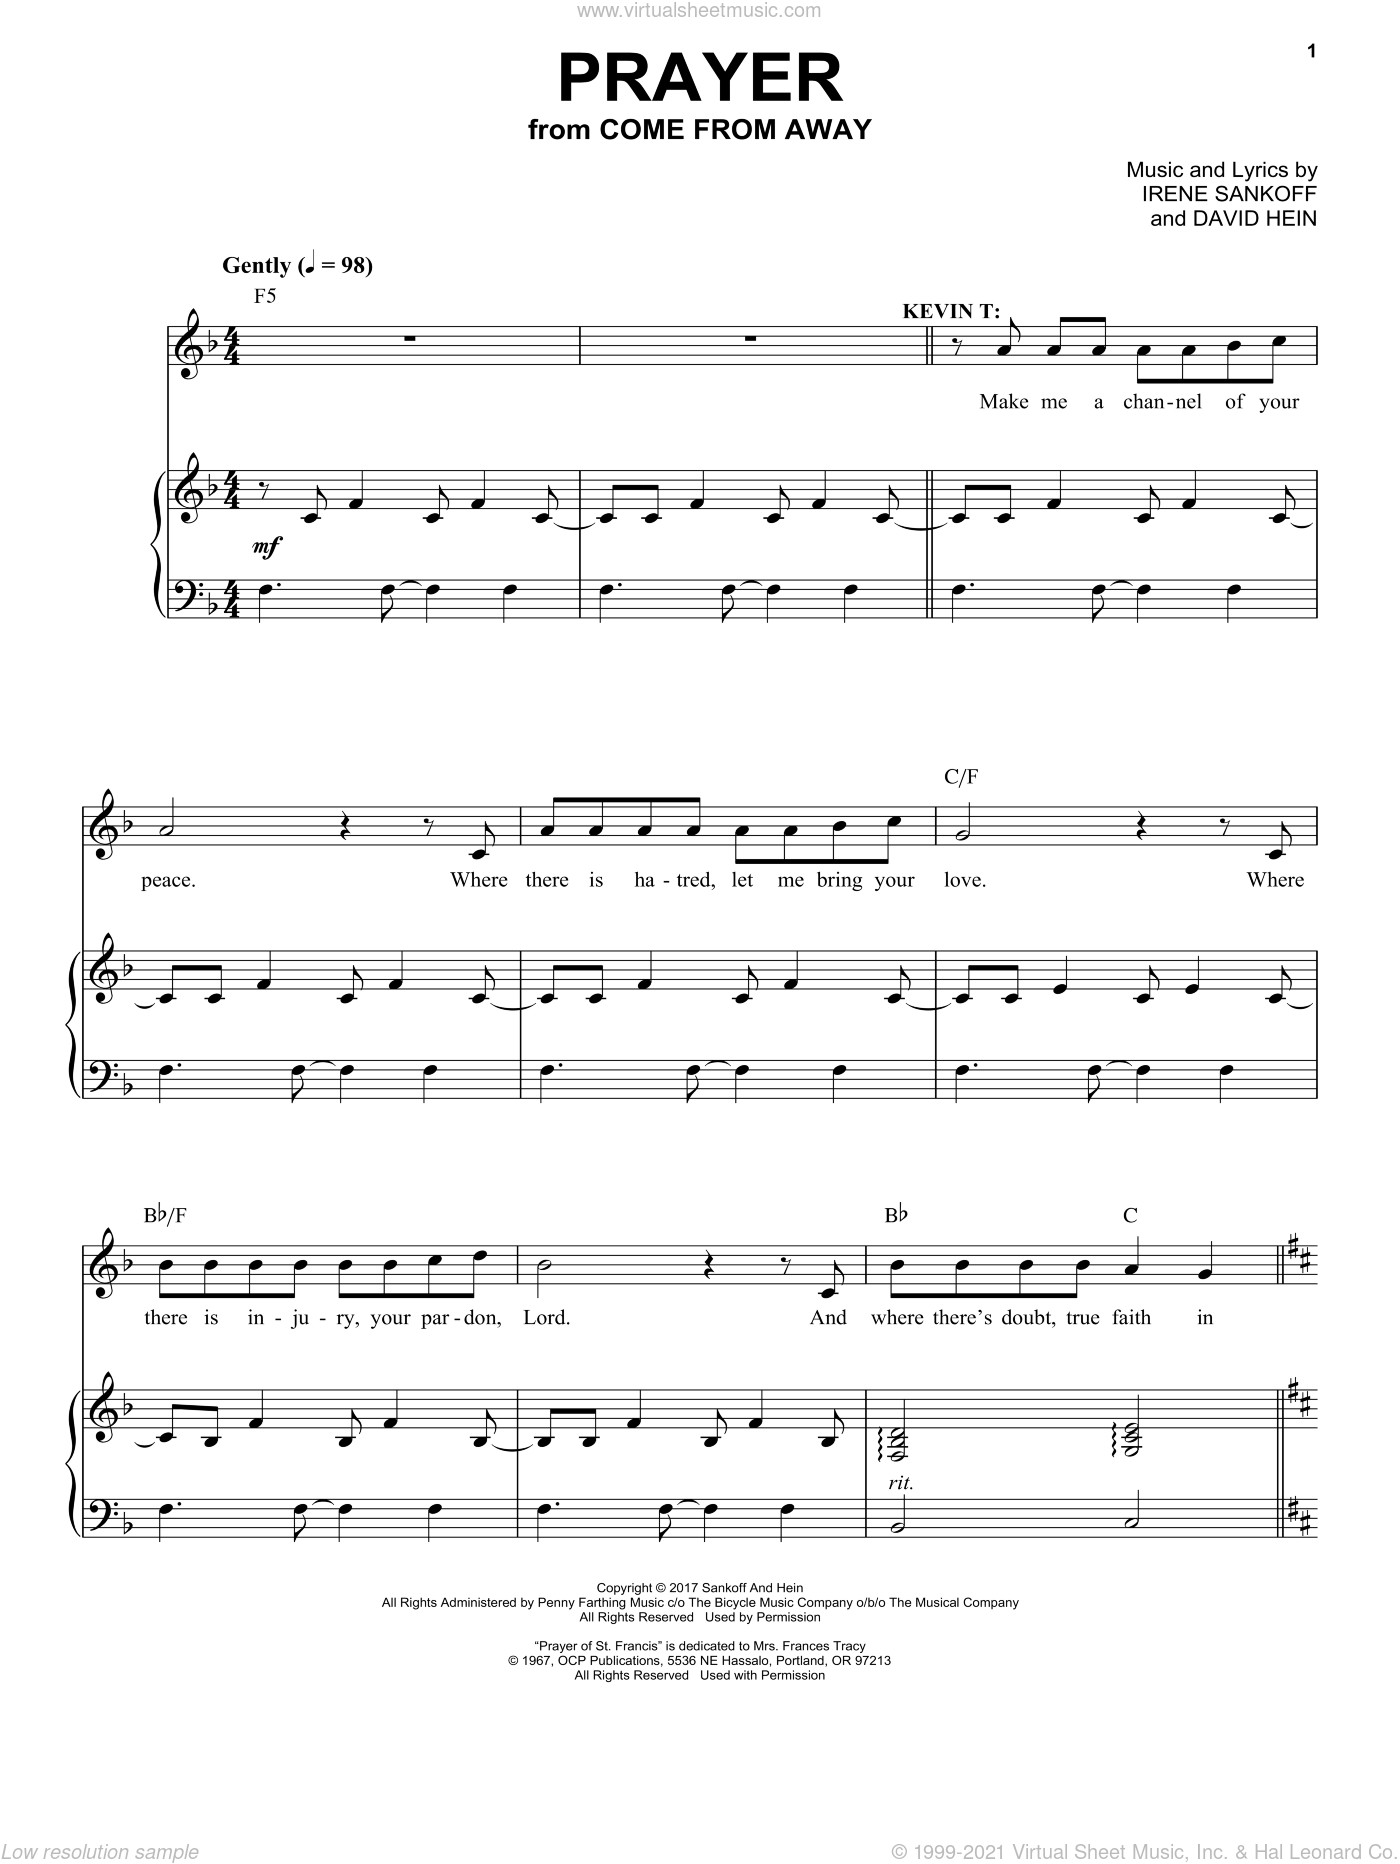 Prayer (from Come from Away) sheet music for voice and piano by Irene Sankoff, David Hein and Irene Sankoff & David Hein, intermediate skill level